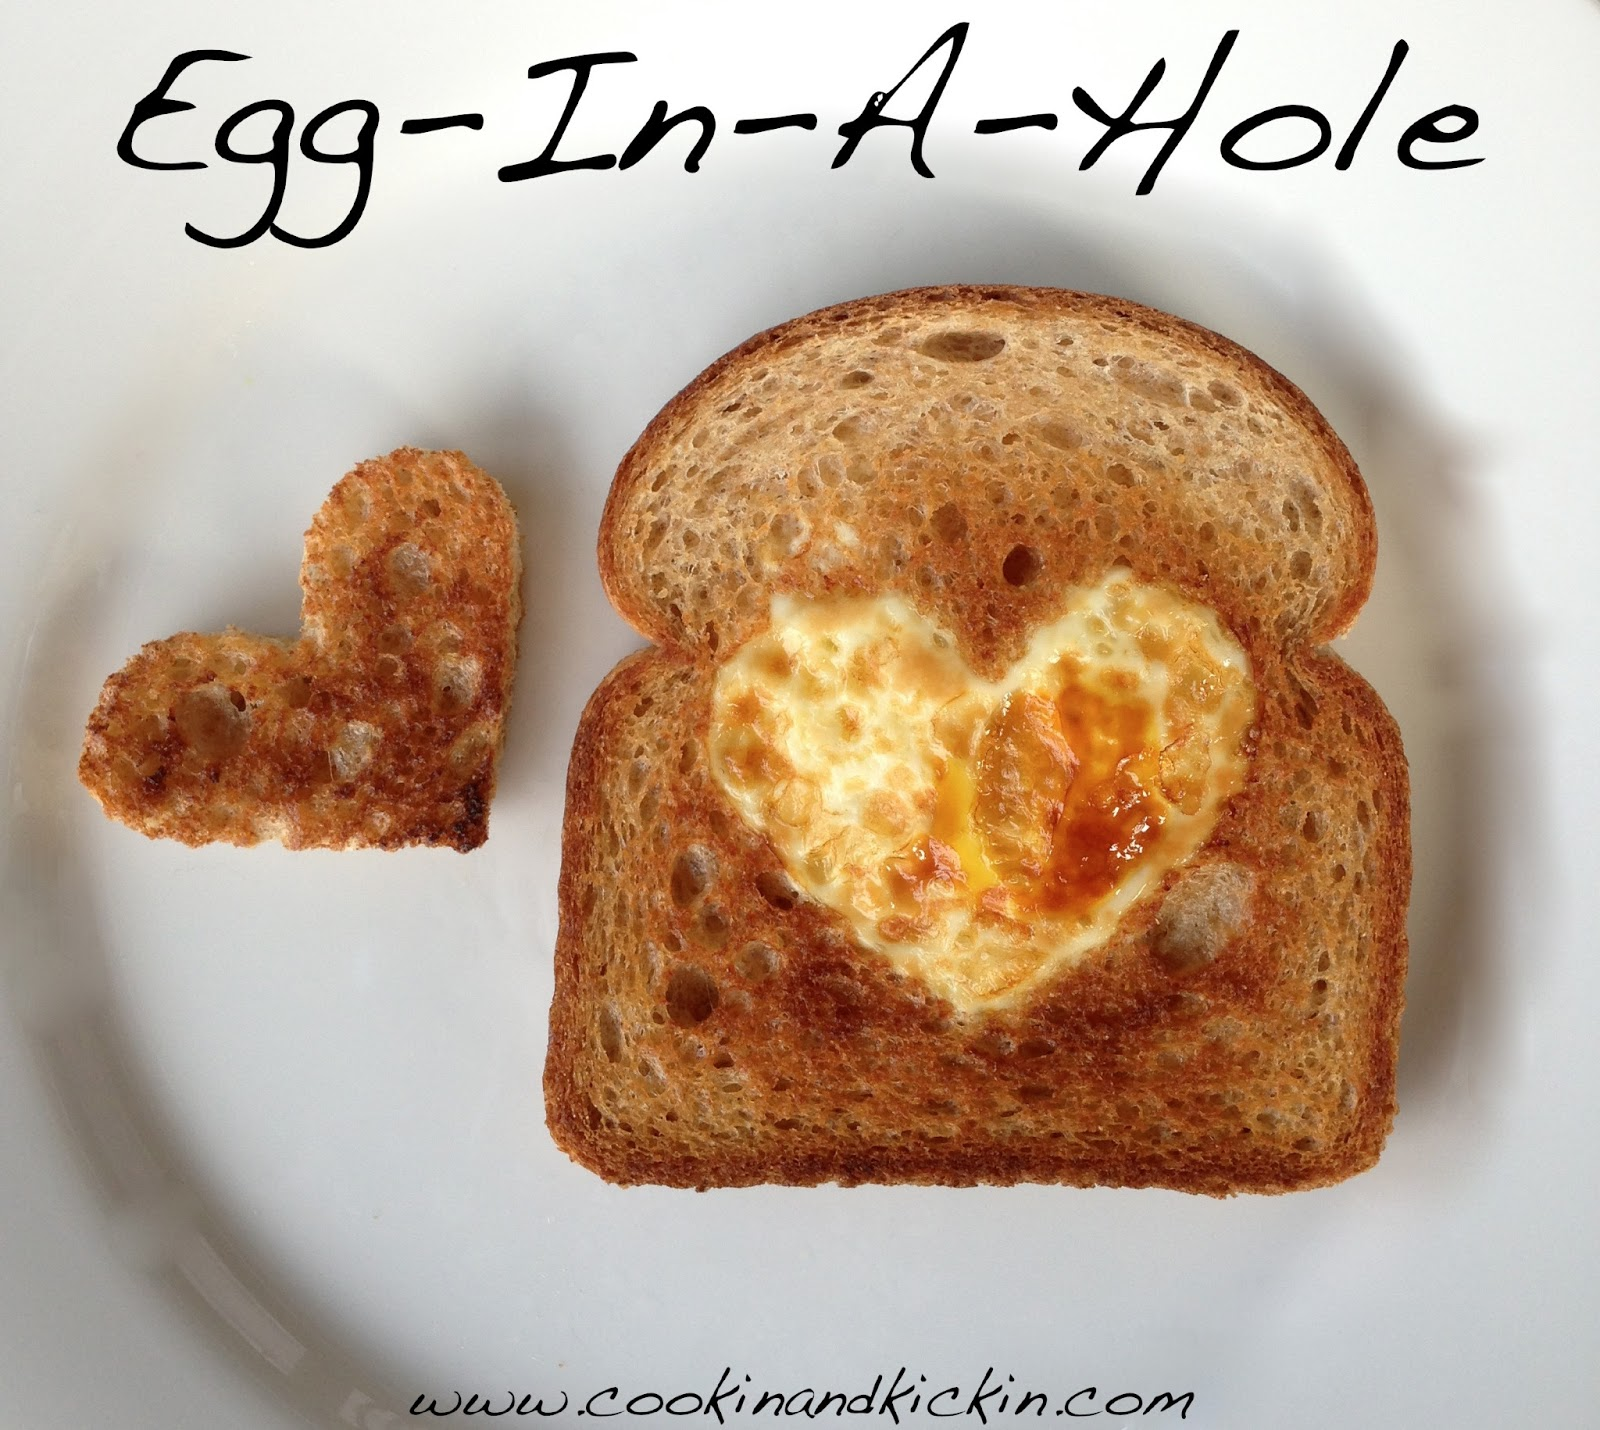 Egg-In-A-Hole | Cookin' And Kickin'